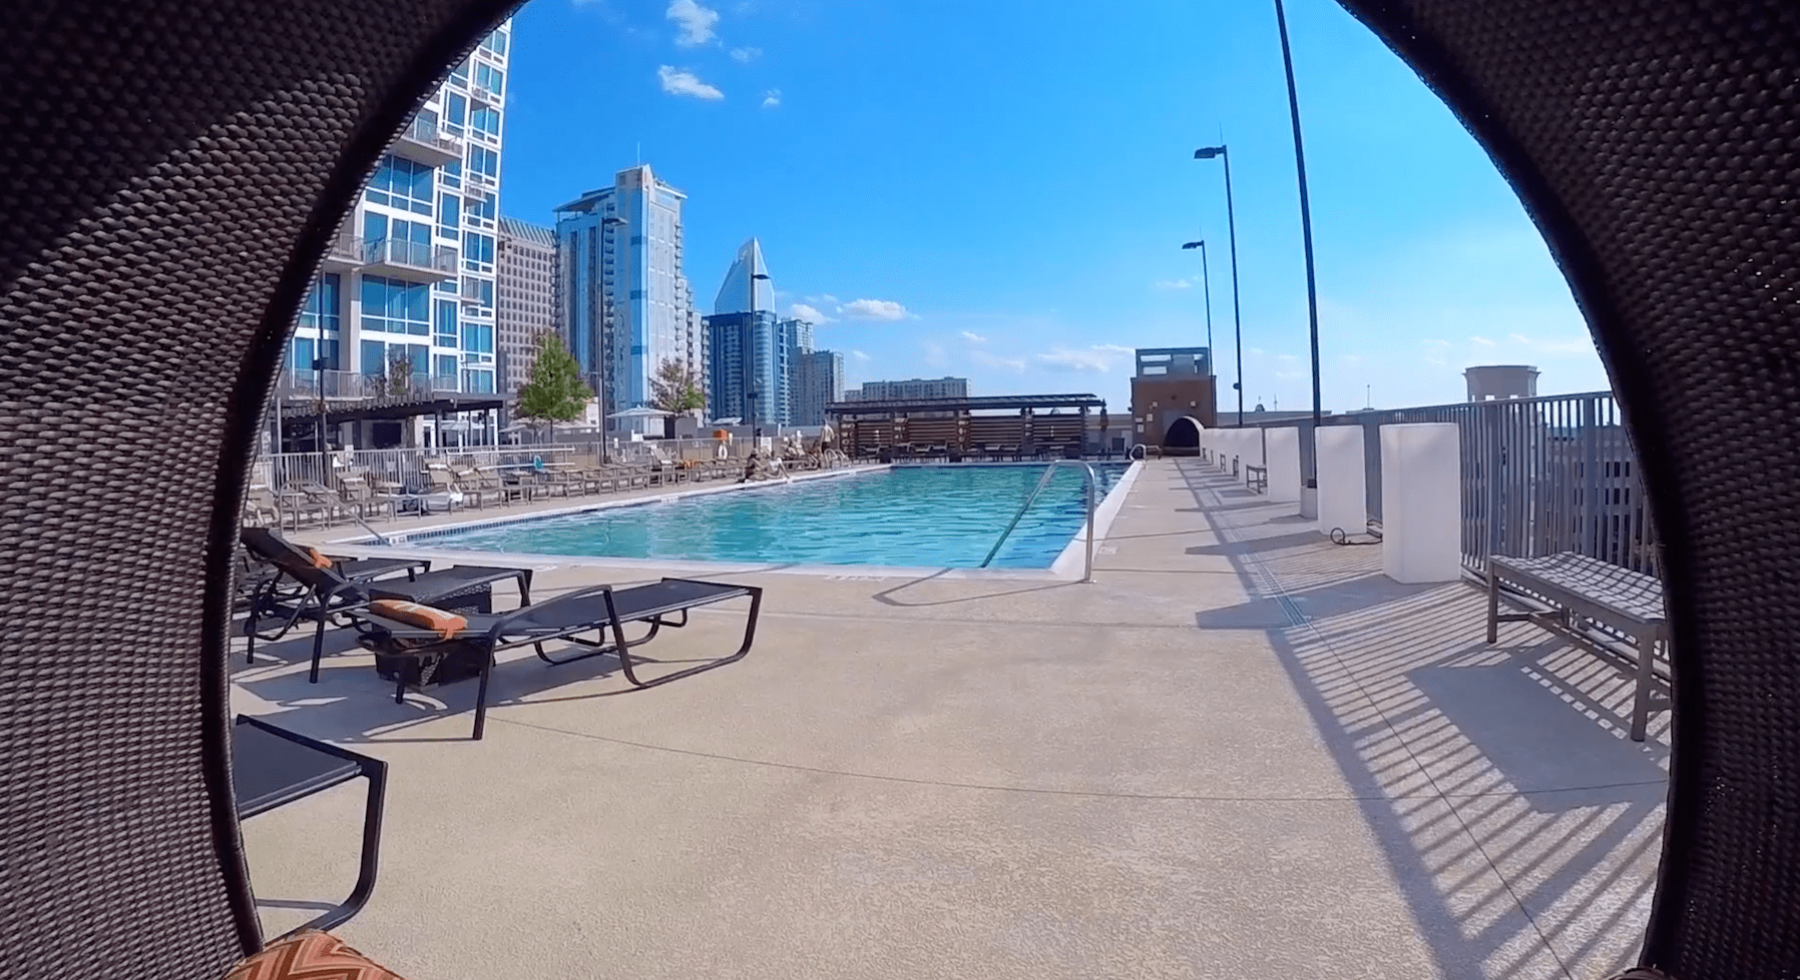 image of the Vue Charlotte from video